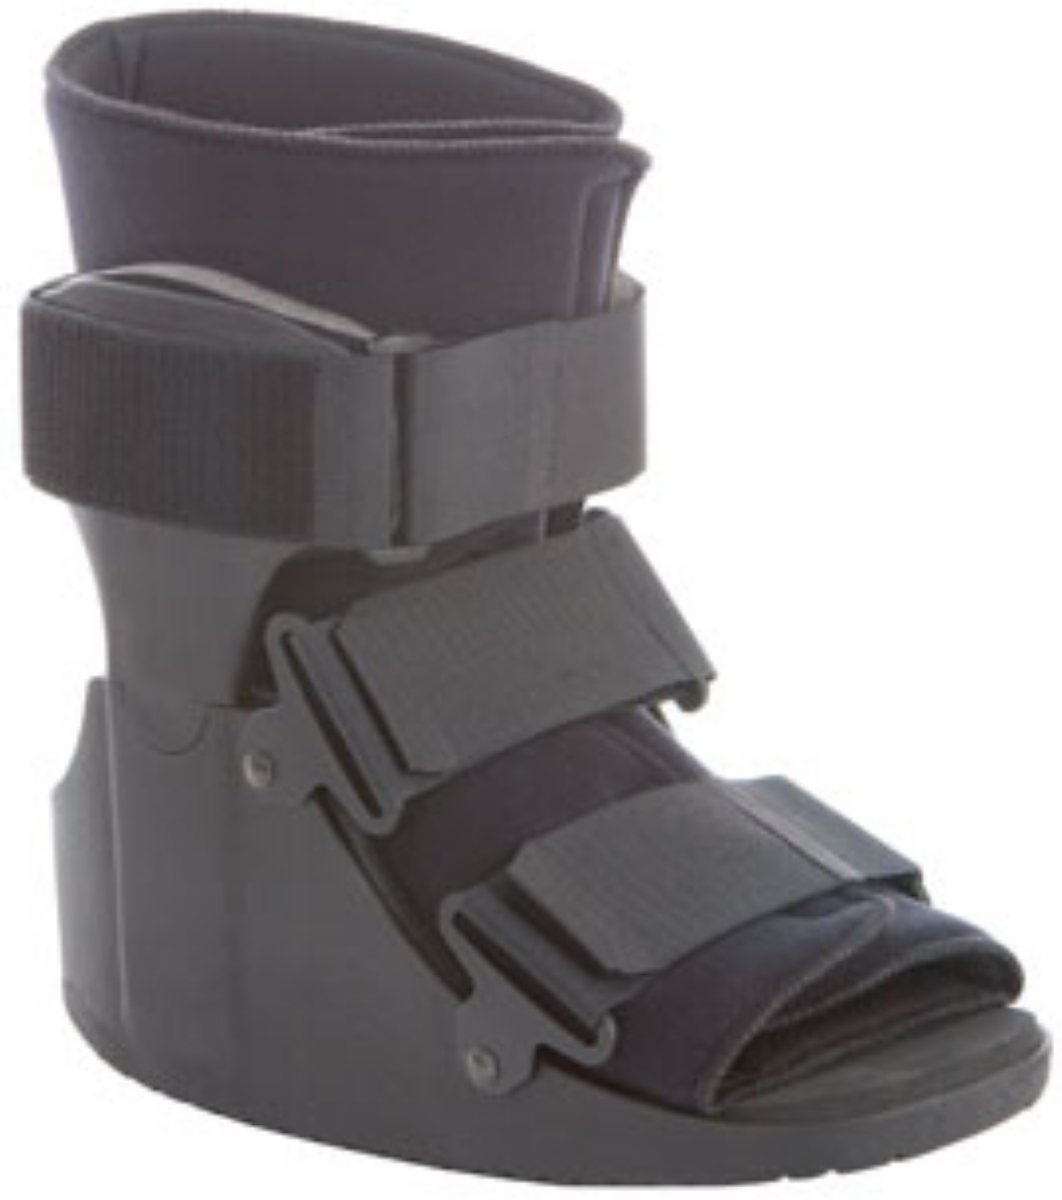 walking boot foot brace fracture sprain ankle